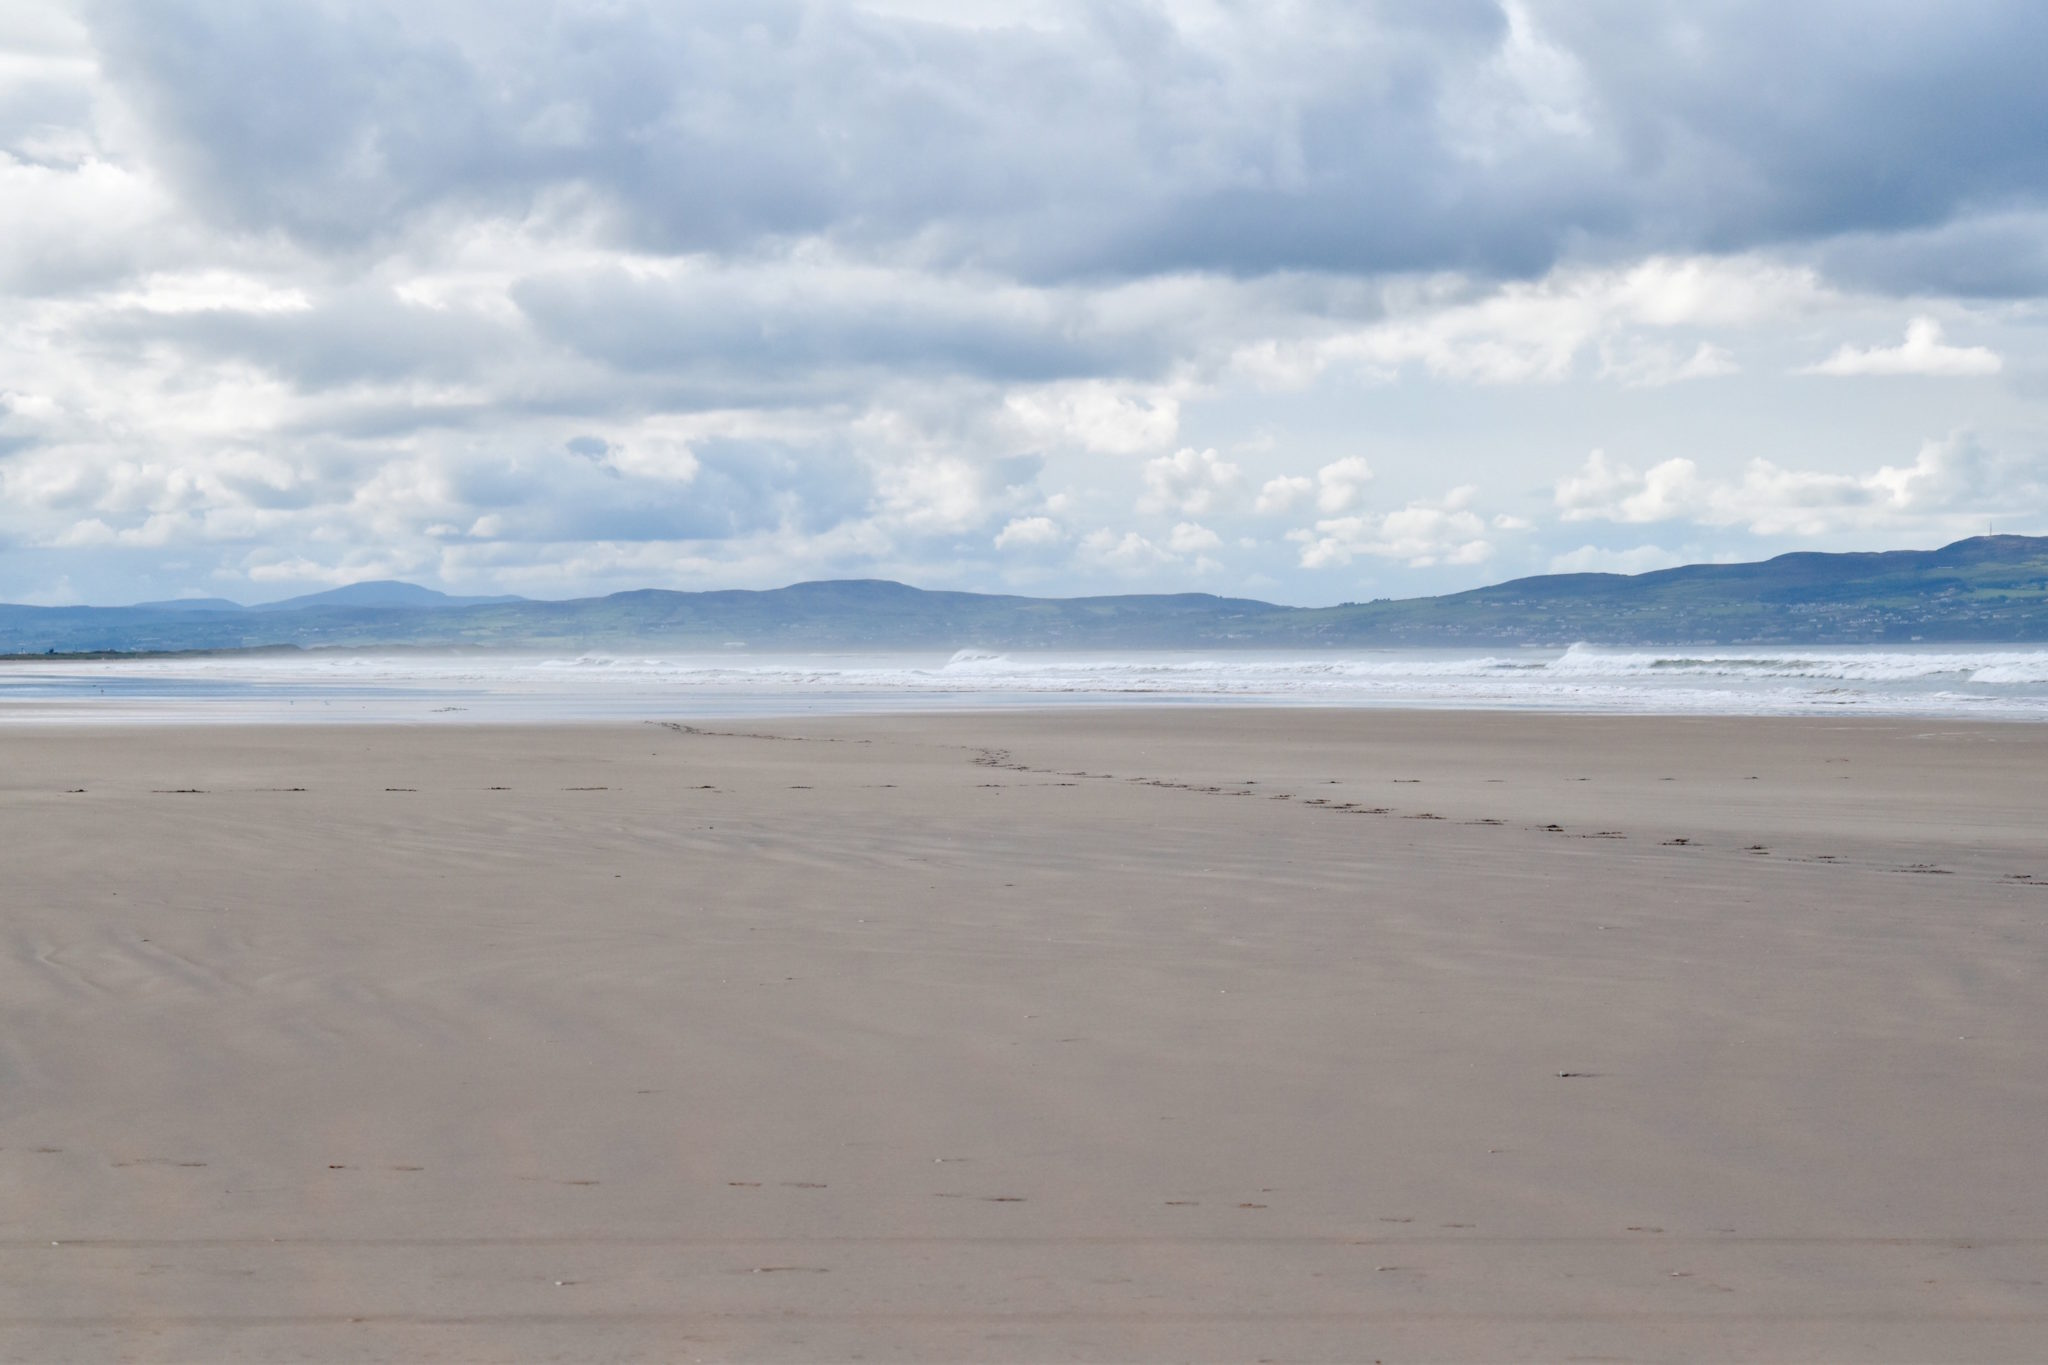 a-lovely-planet-downhill-strand-northern-ireland-1